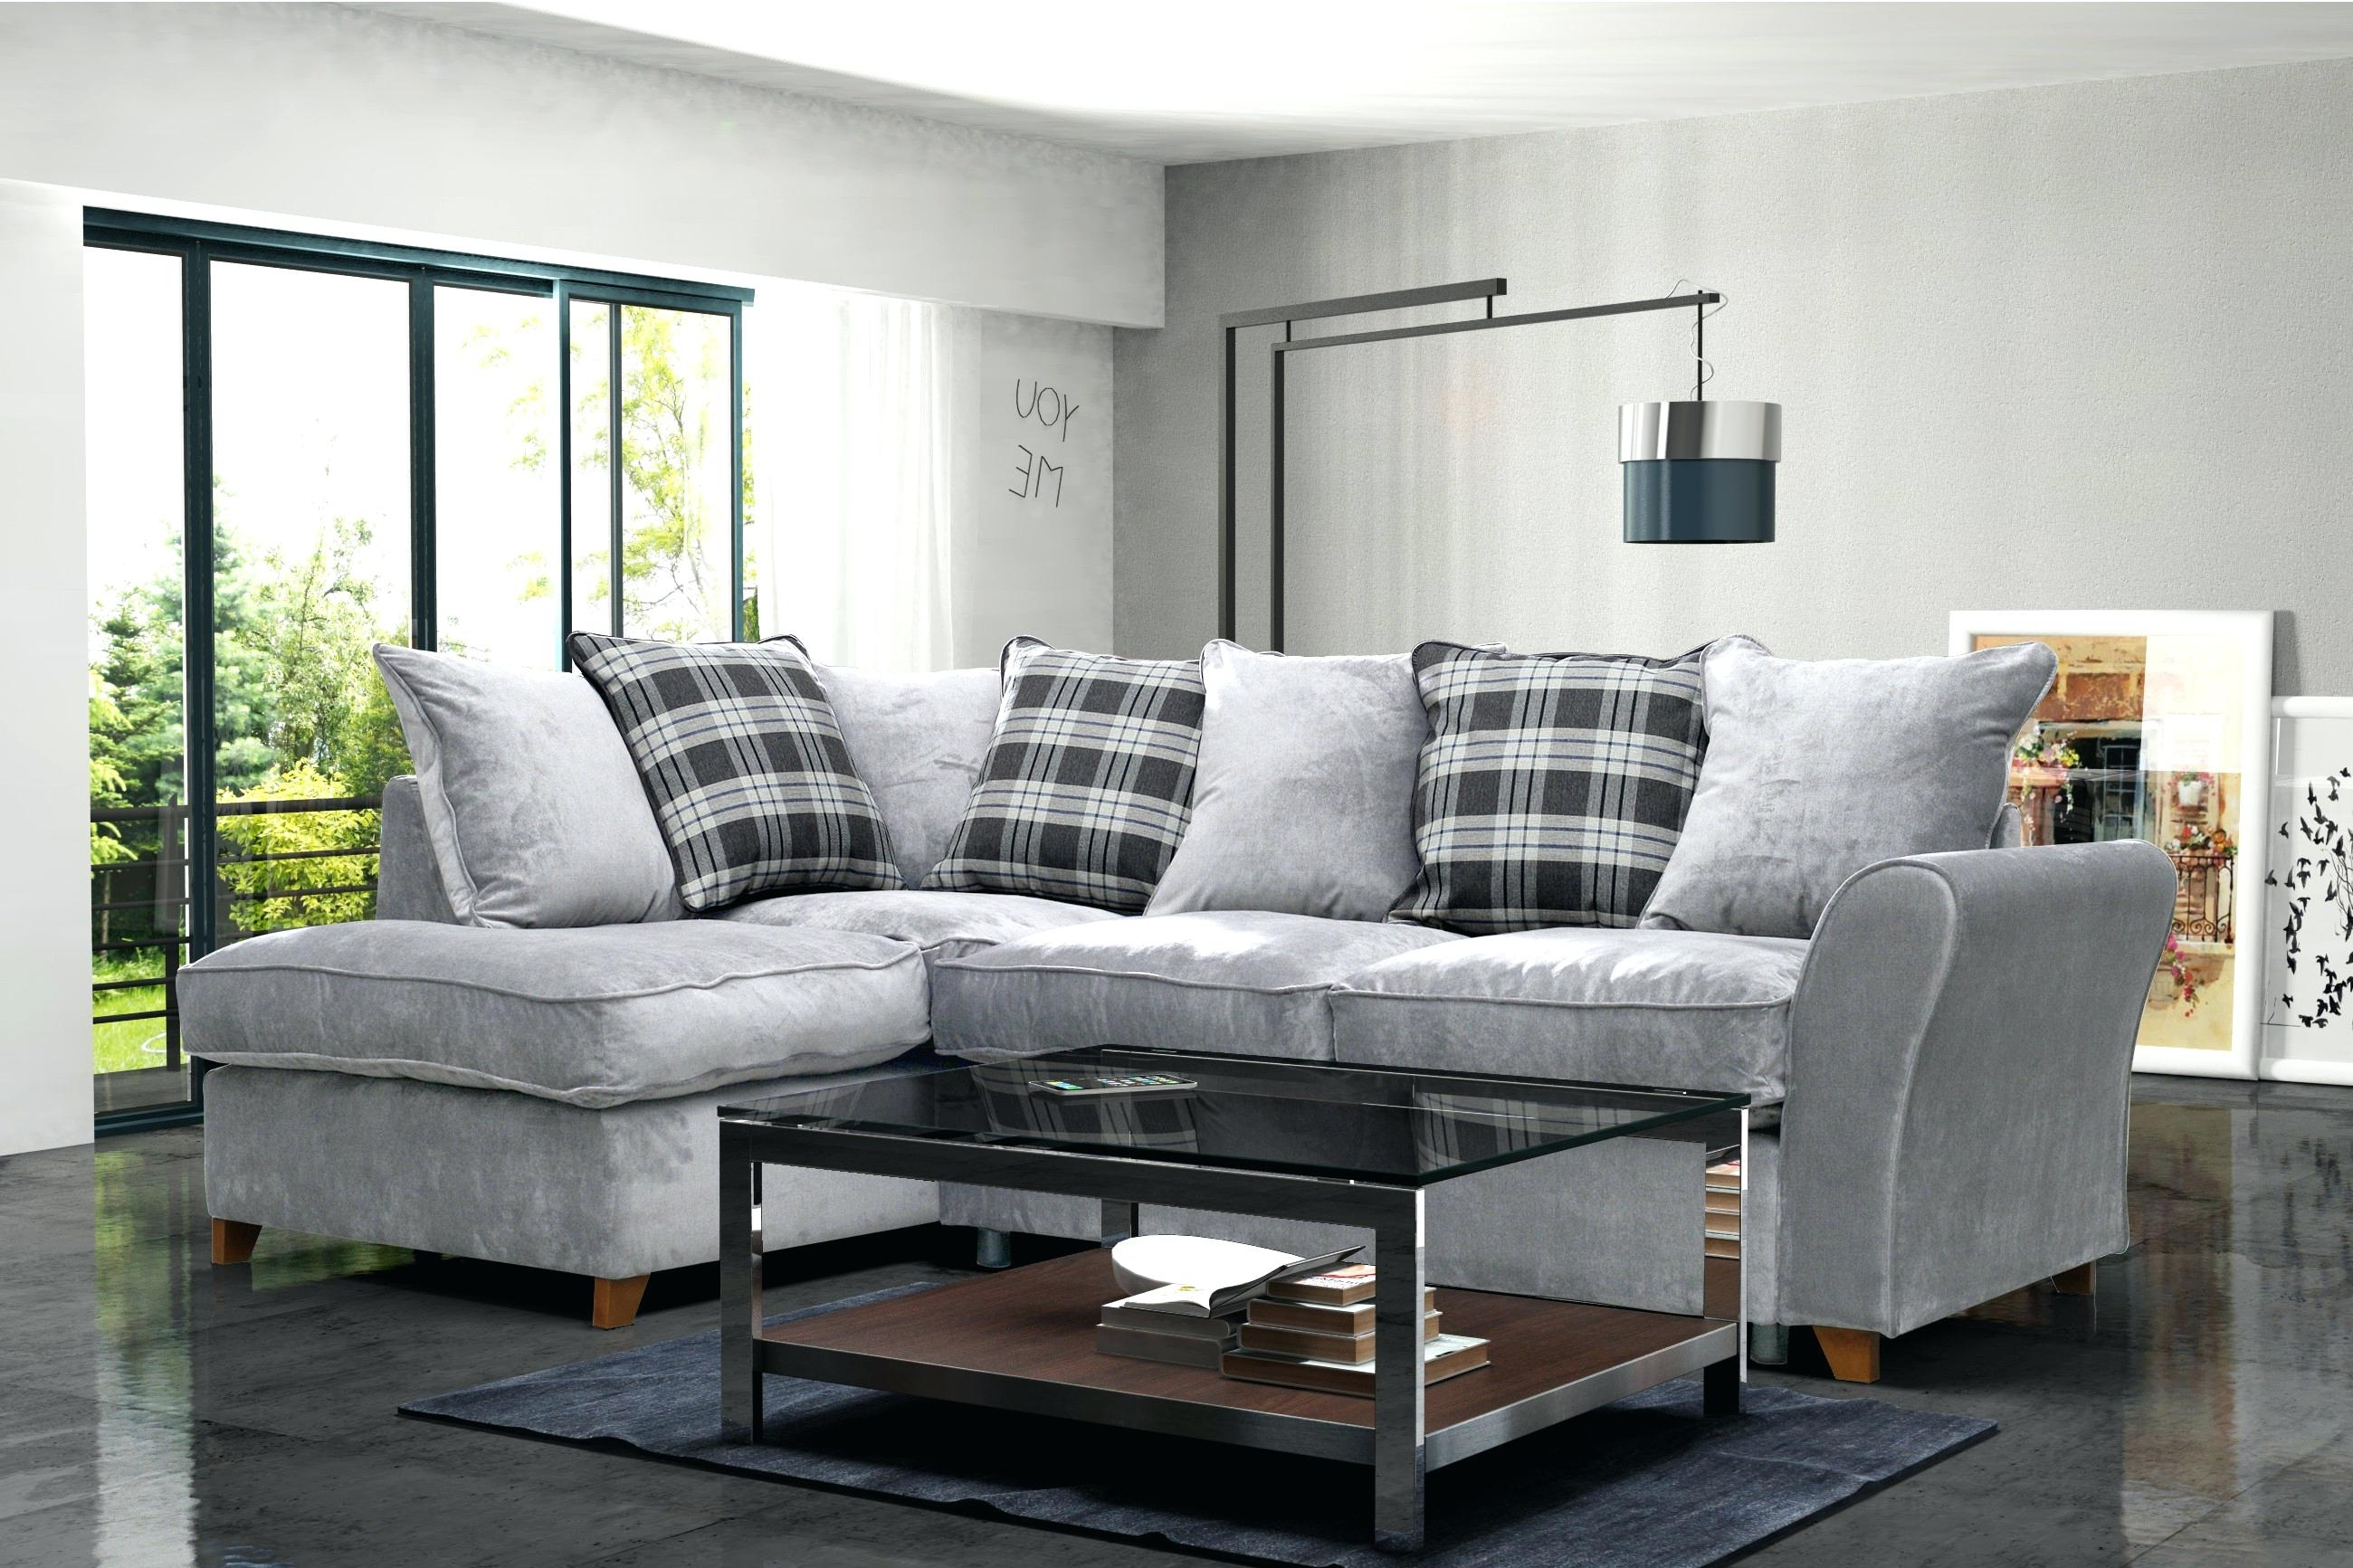 Widely Used Living Room Furniture Pillows Throw Sofa Pillow Covers Cushions For Stratford Sofas (View 15 of 15)